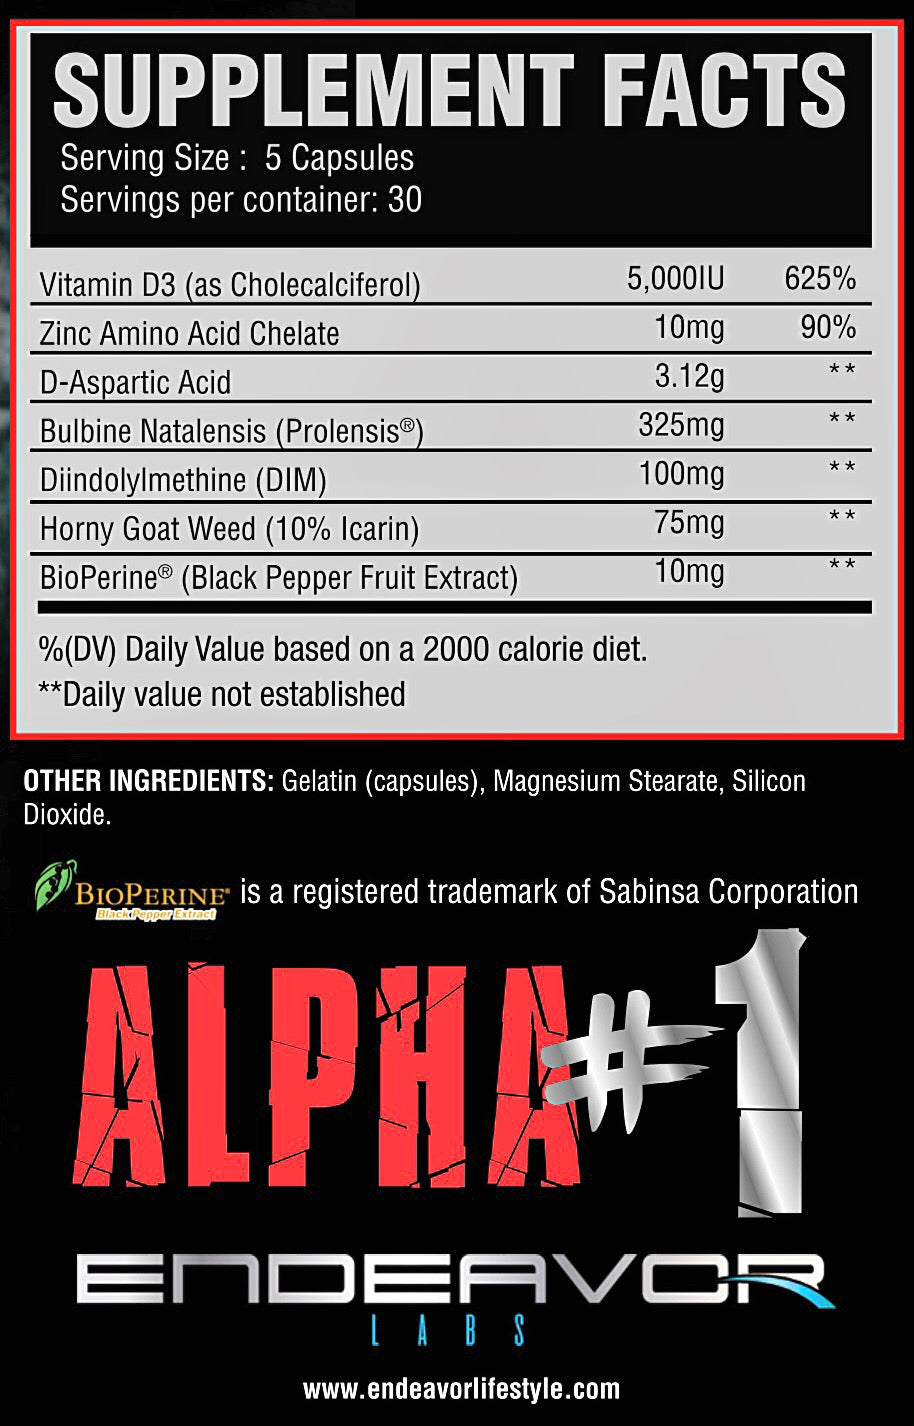 ALPHA #1 NATURAL TESTOSTERONE BOOSTER - 150 CAPSULES